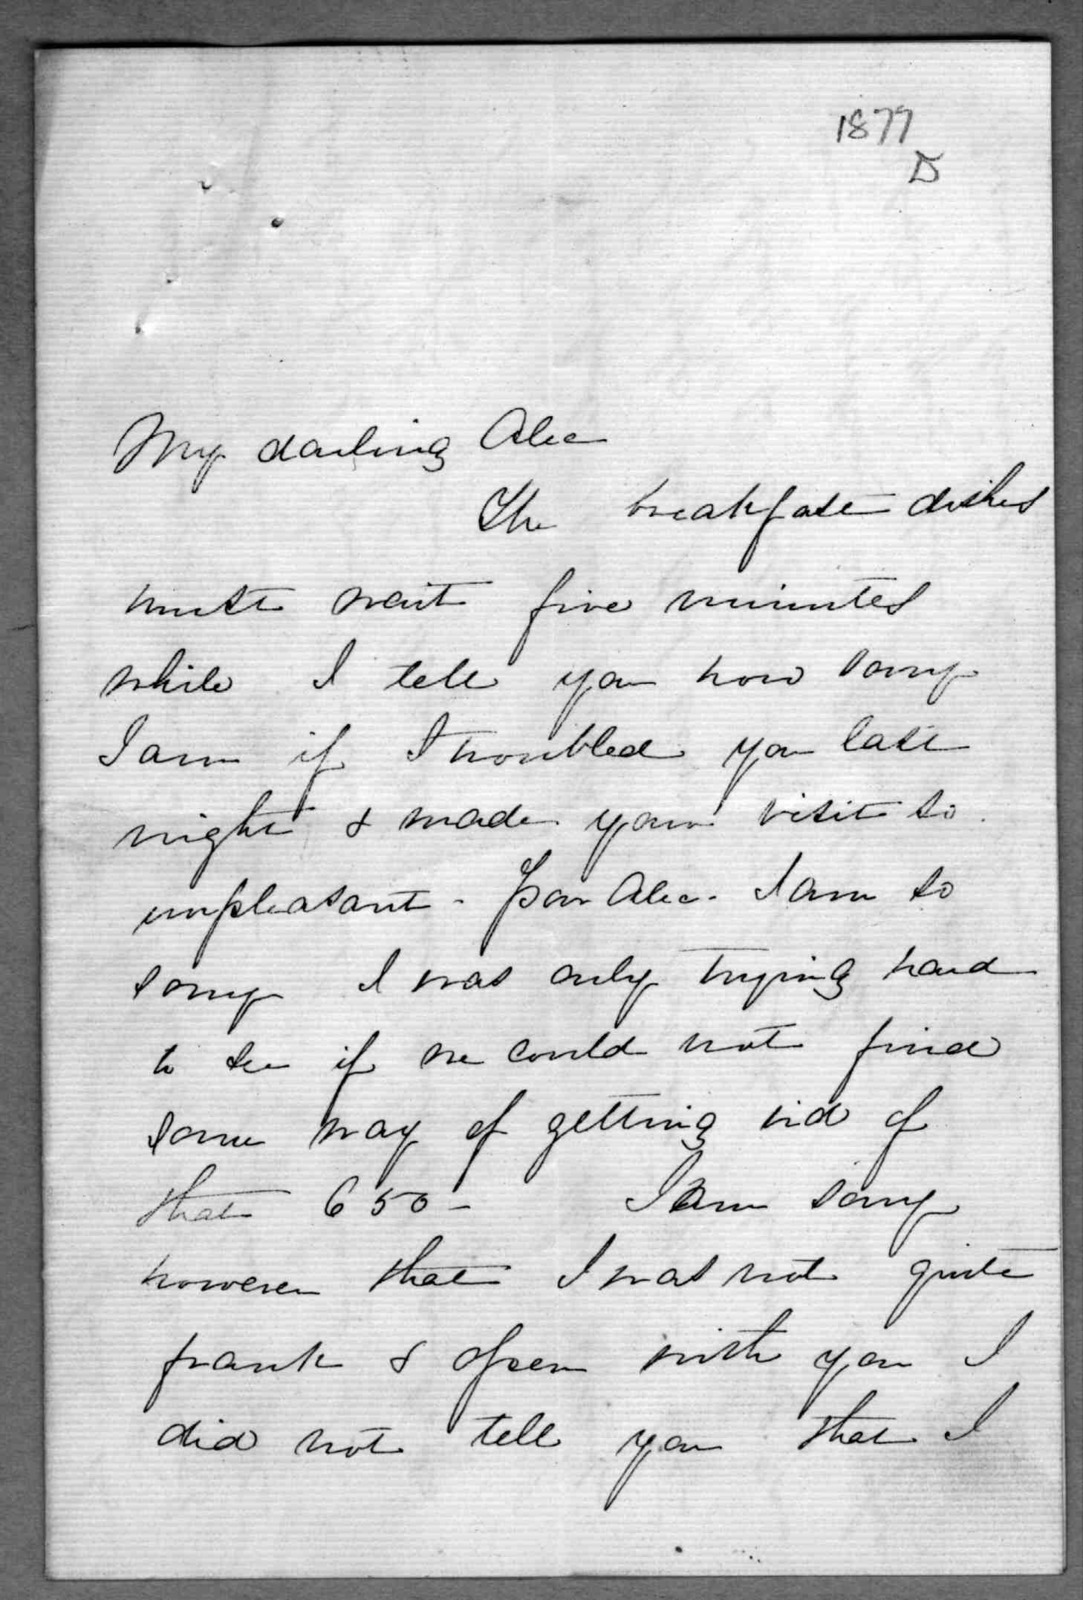 Letter from Mabel Hubbard Bell to Alexander Graham Bell, February 2, 1877